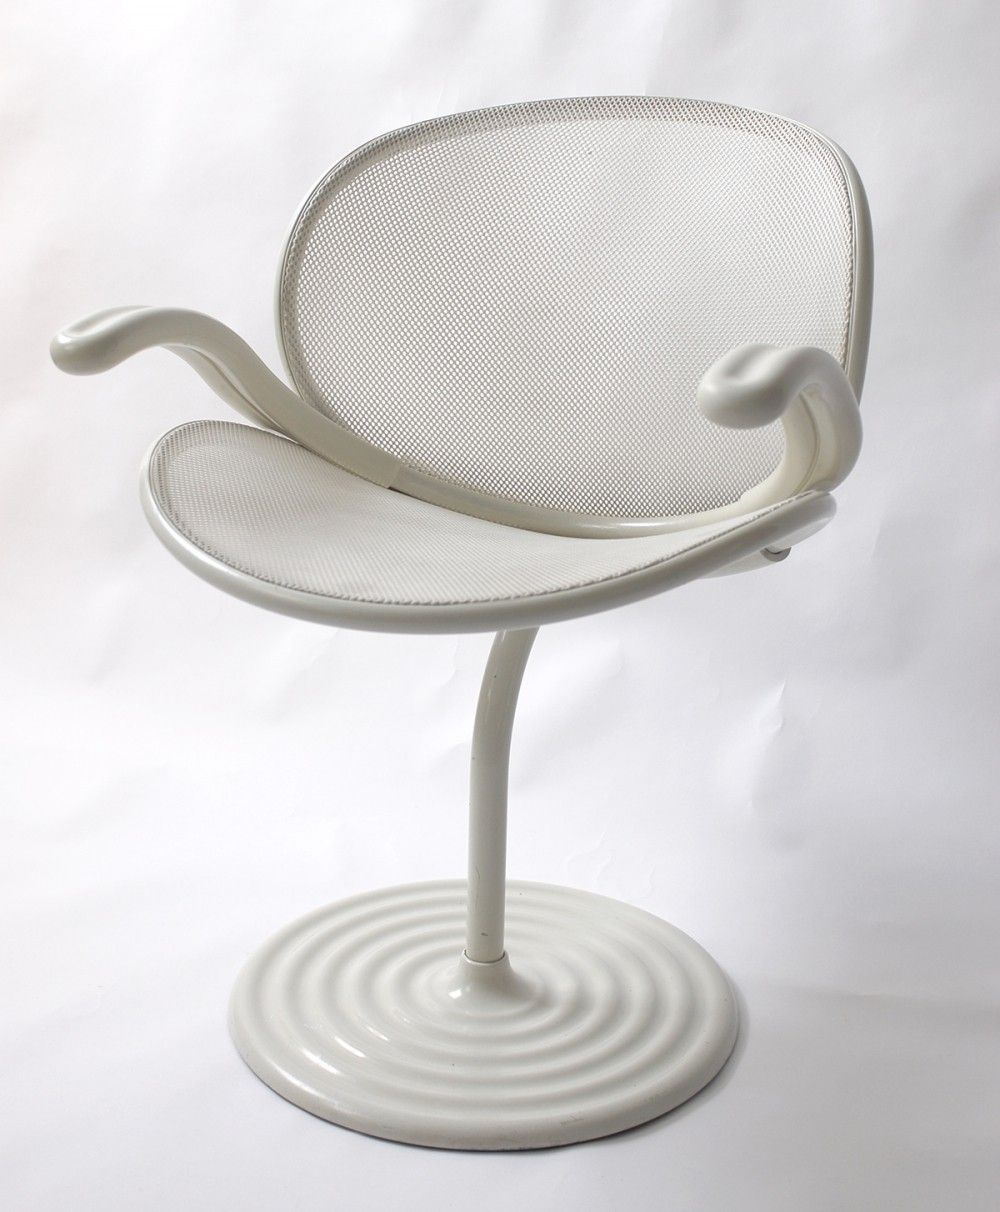 For Sale Wilkhahn O Line Arm Chair By Herbert Ohl 1982 Mit Bildern Stuhle